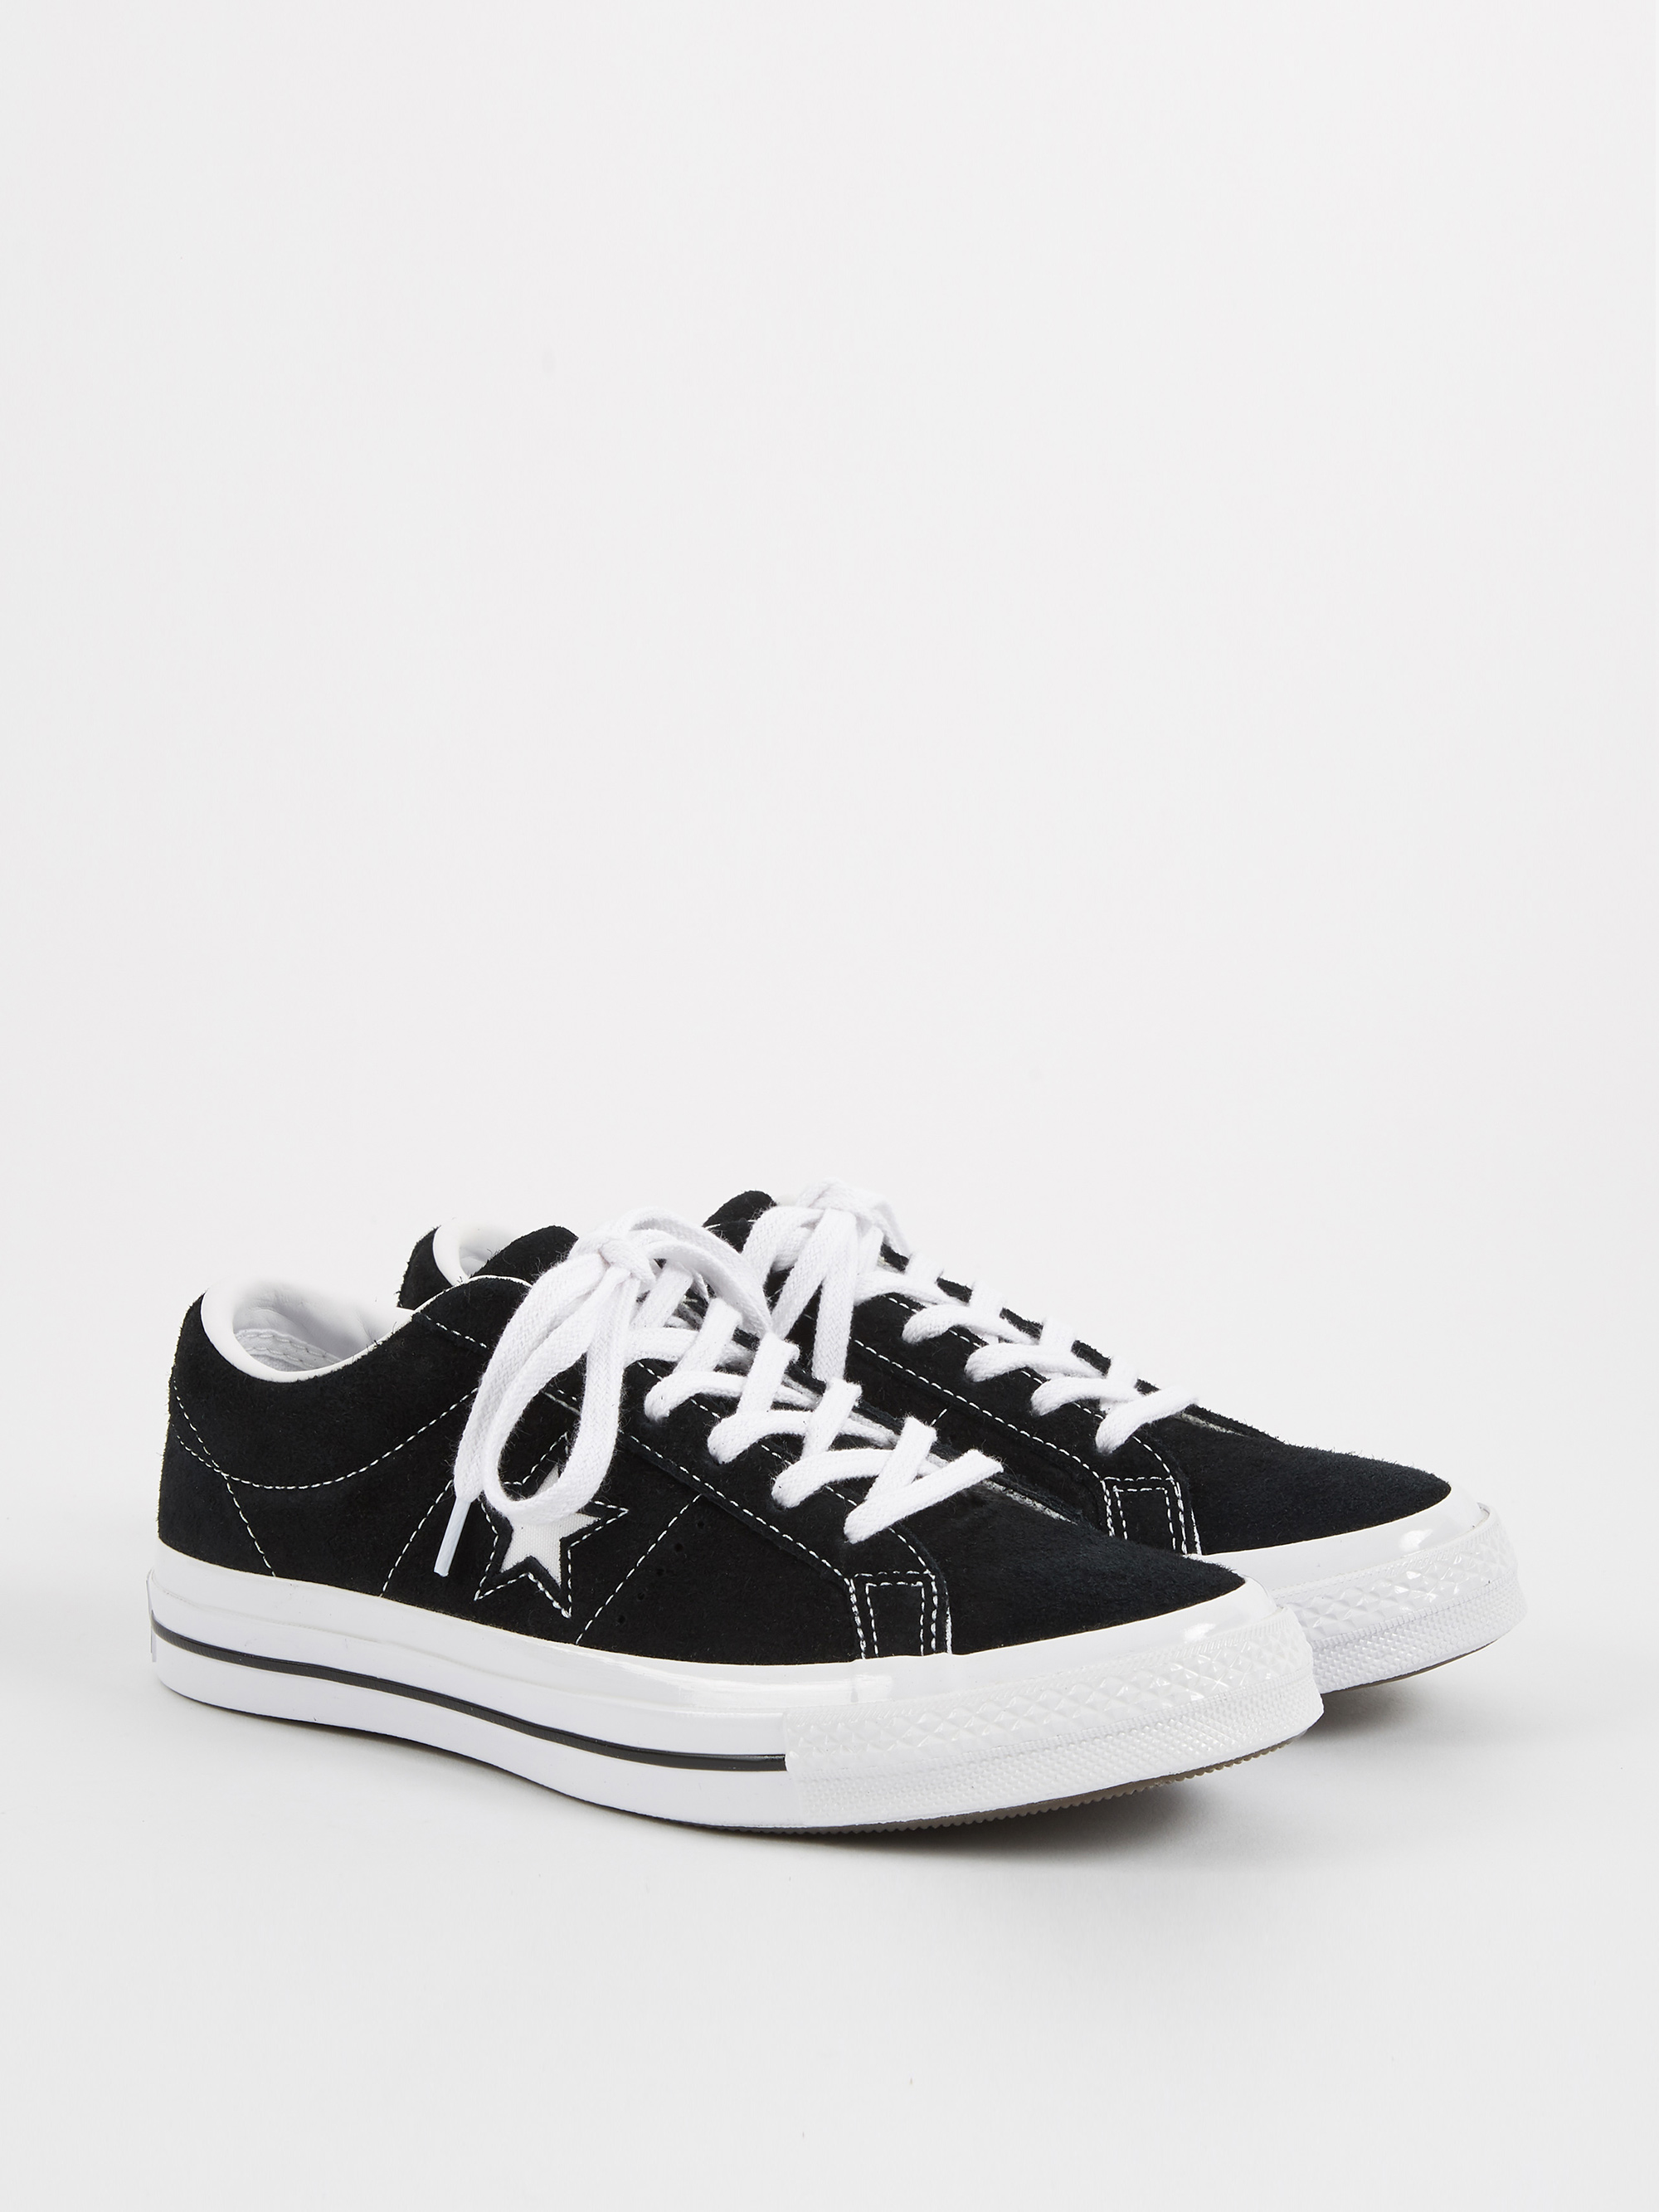 d6bad2f63286 Converse One Star Ox - Black White